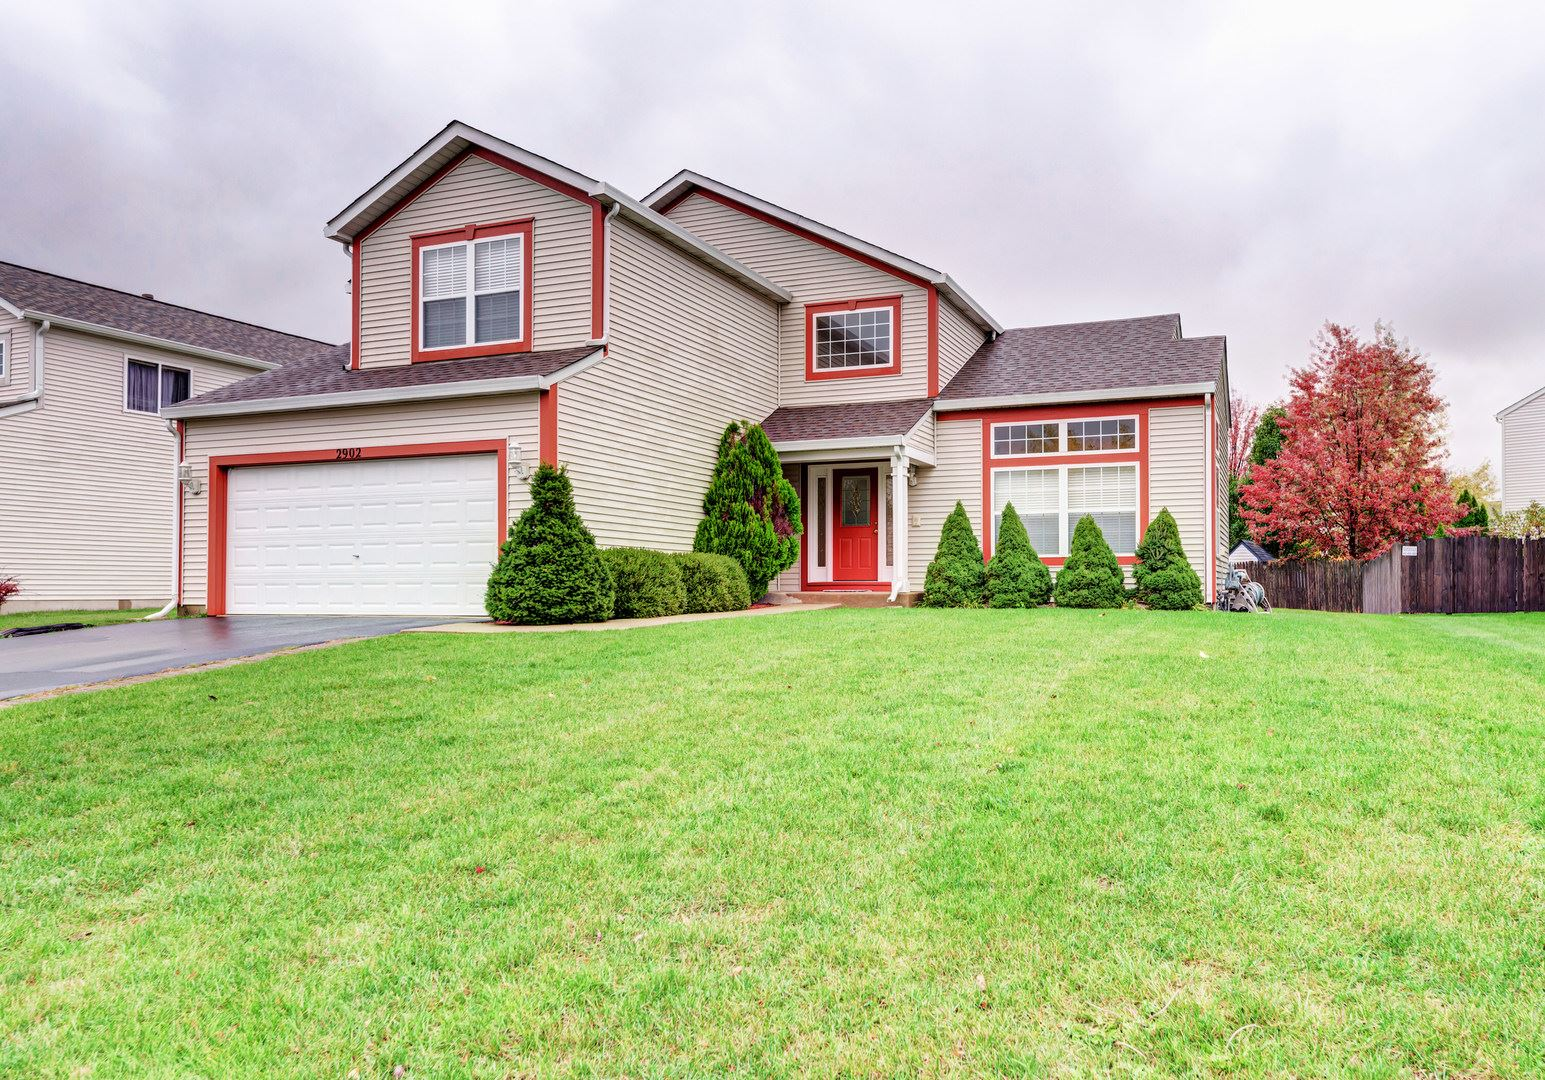 Photo of 2902 Discovery Drive, Plainfield, IL 60586 (MLS # 10916324)